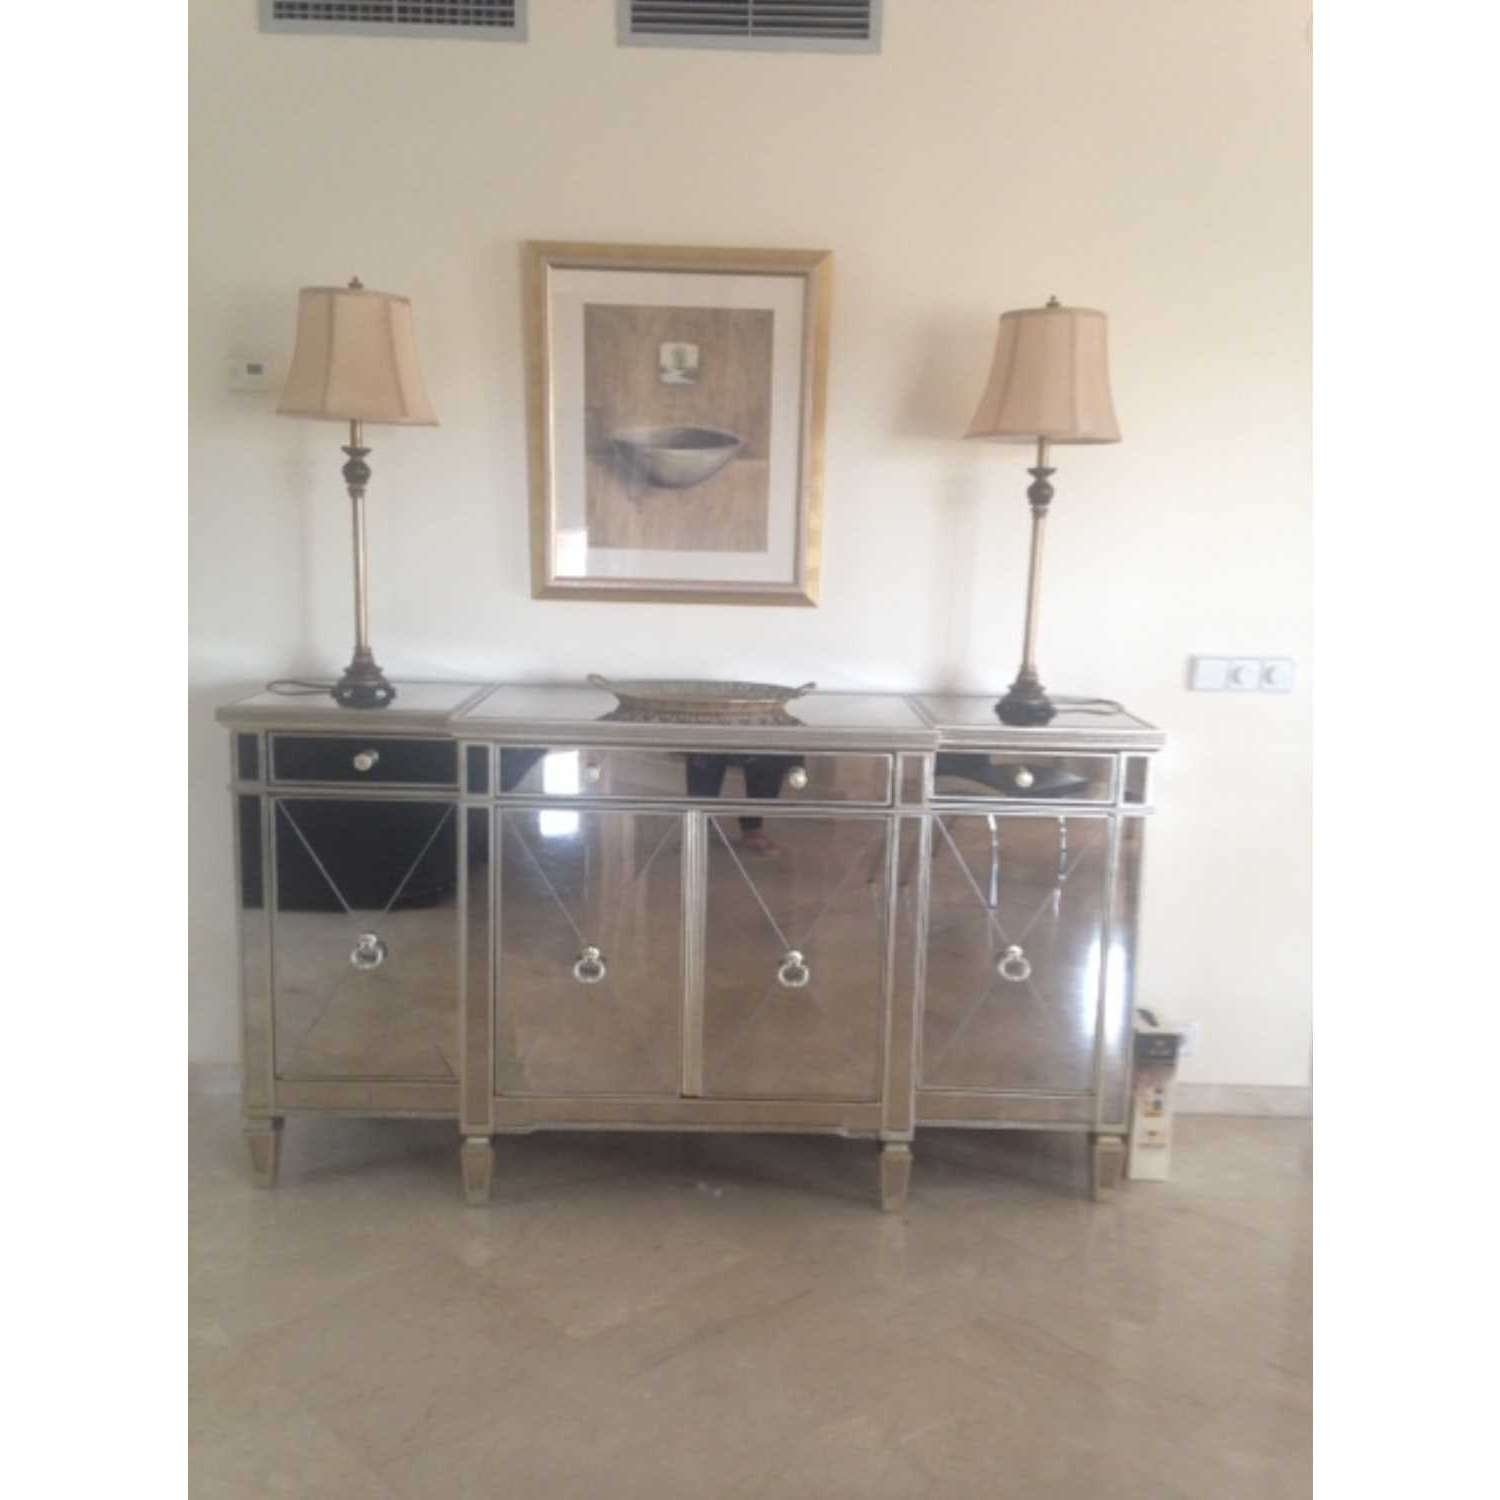 Large Antique Seville Venetian Mirrored Glass Sideboard 4 Door Within Glass Sideboards (View 6 of 20)